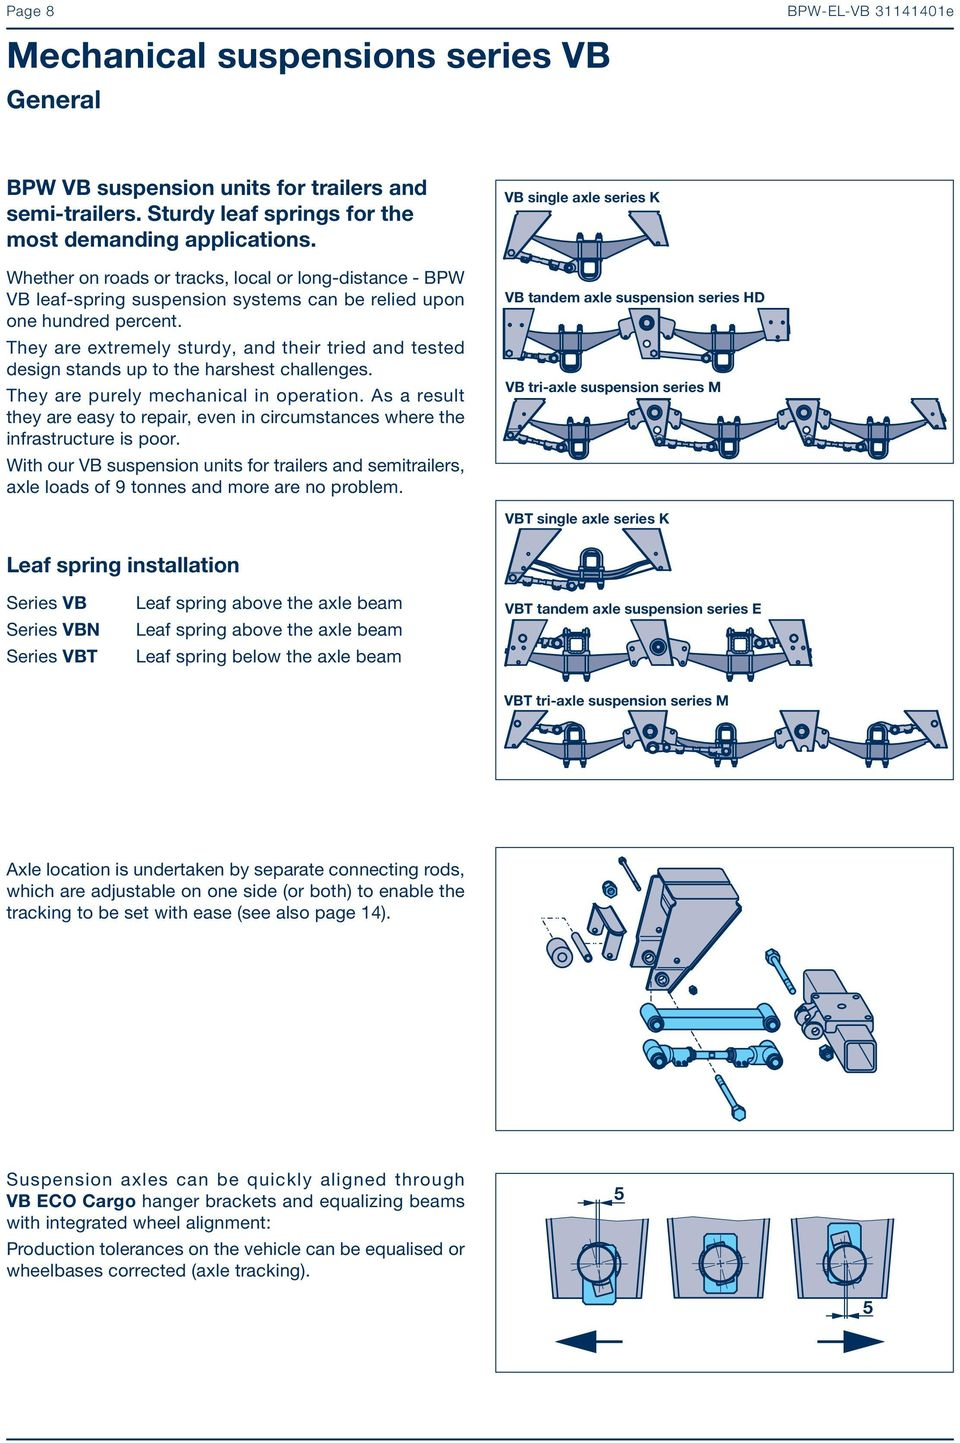 Vb Vbn Vbt Bpw Original Spare Parts Mechanical Suspensions Series Dual Axle Trailer Ke Wiring Diagram They Are Extremely Sturdy And Their Tried Tested Design Stands Up To The Harshest